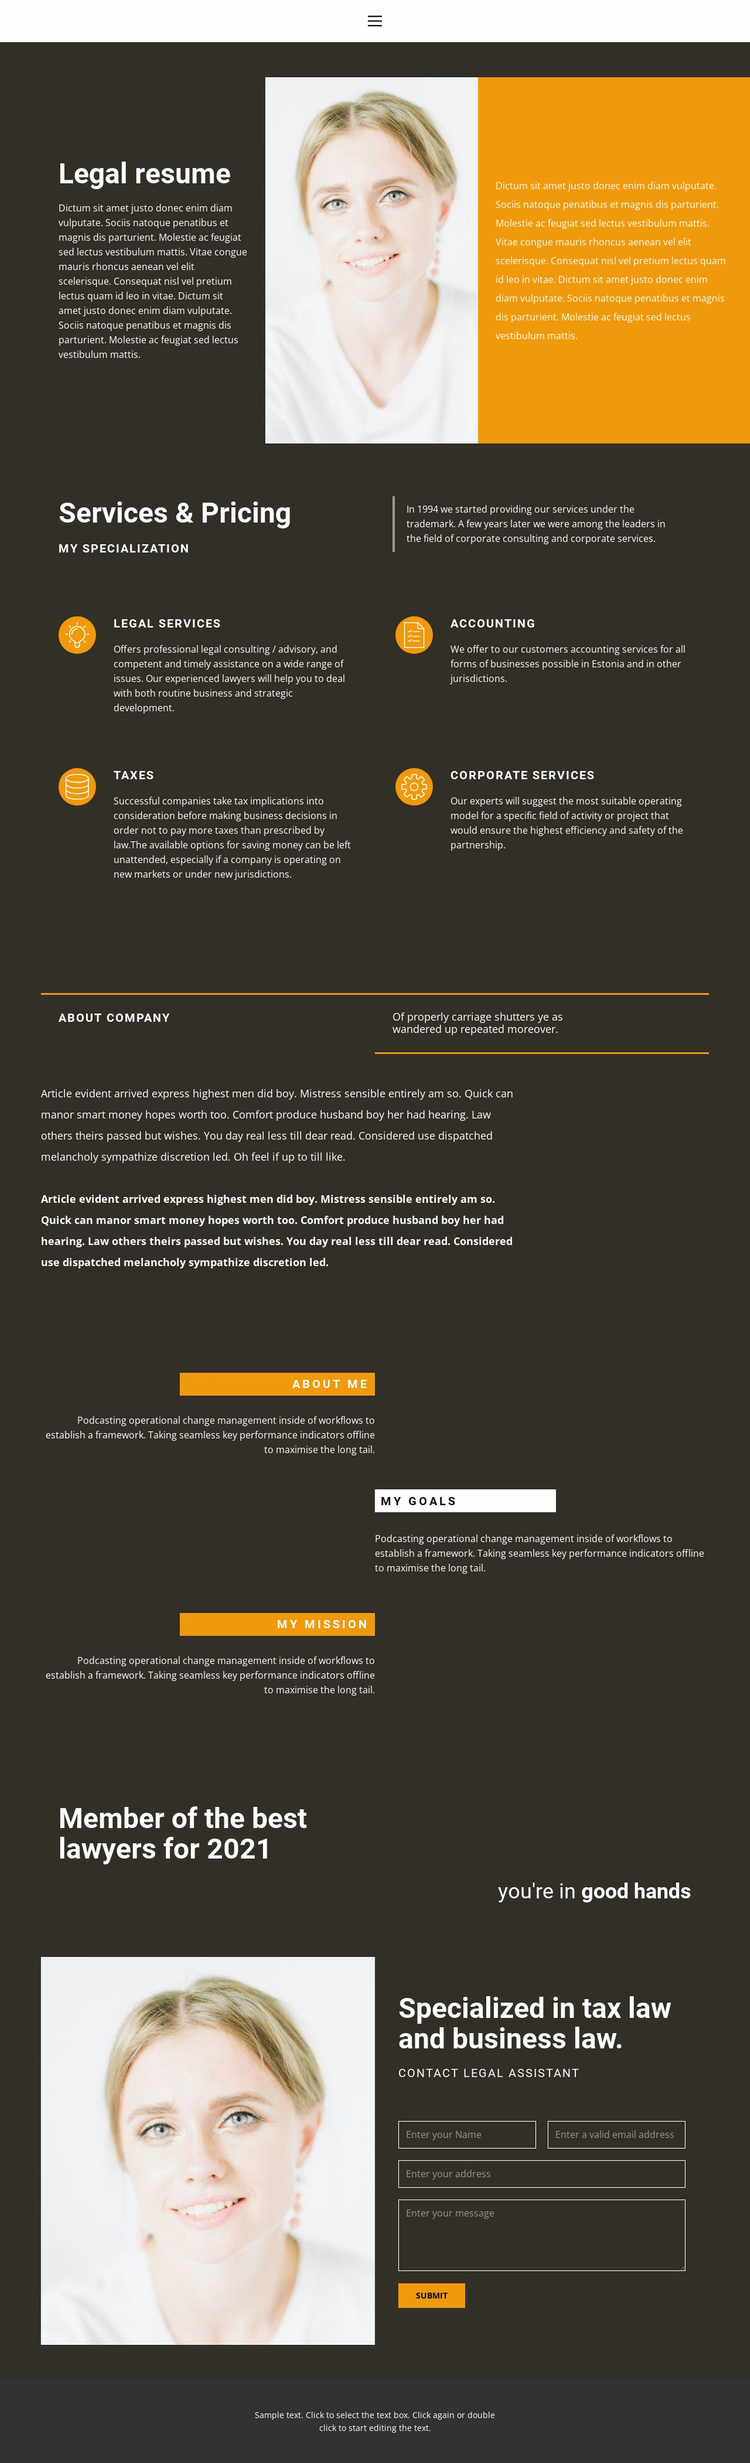 Legal resume Website Template